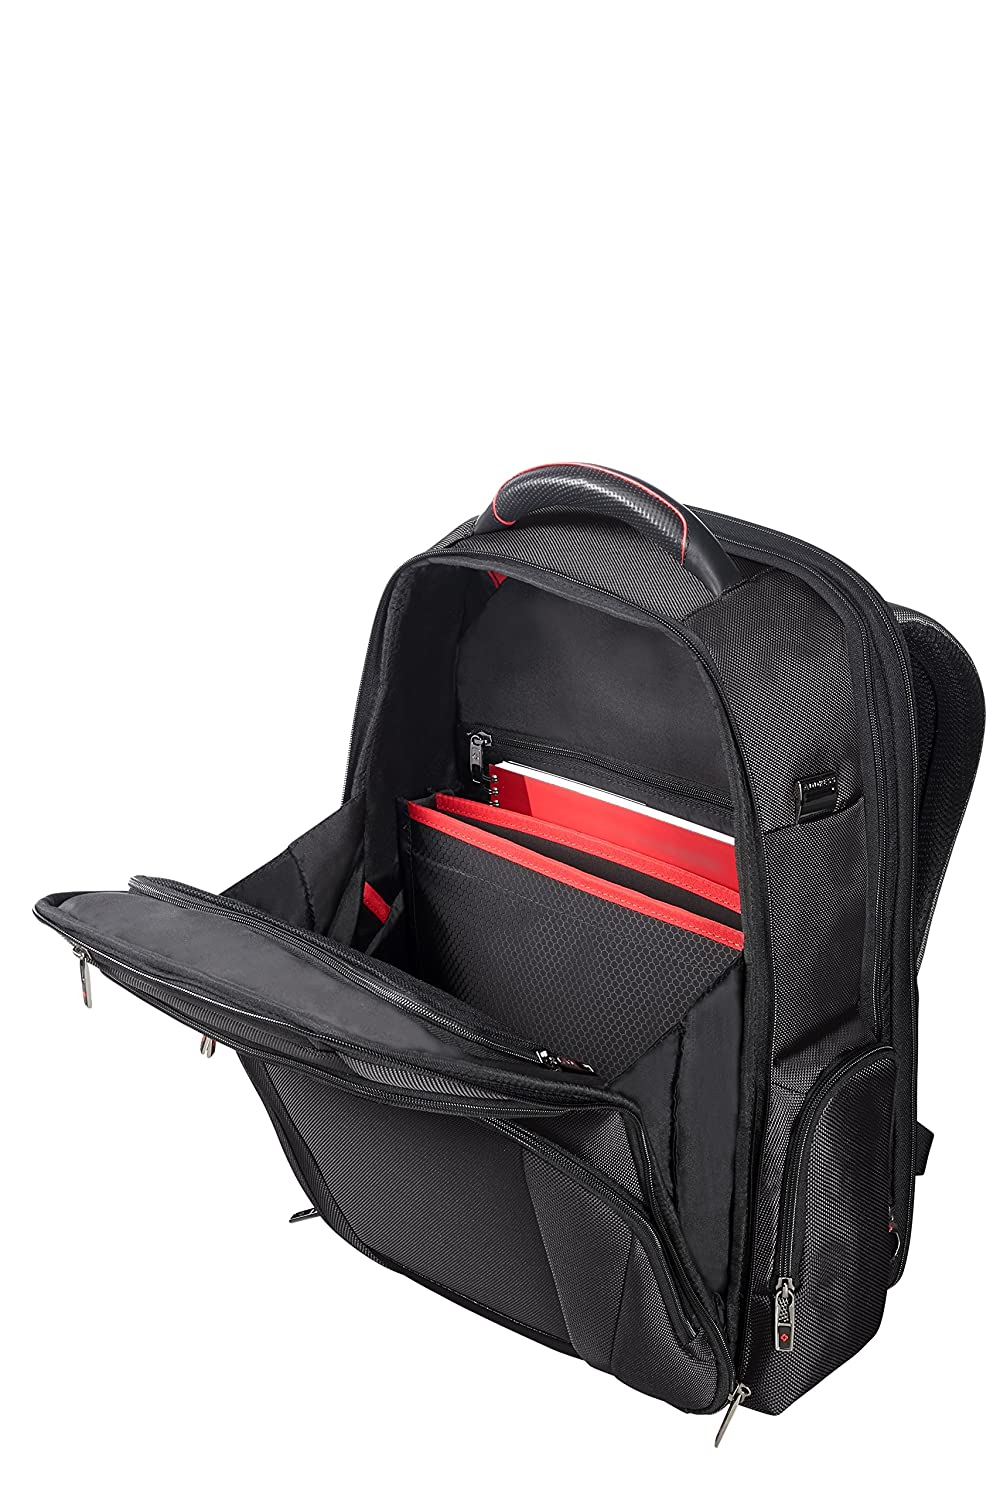 beea563359e60 Black 29 liters SAMSONITE PRO-DLX 5 Backpack Expandable for 17.3 Laptop  29 34L 1.7 KG Casual Daypack 48 cm